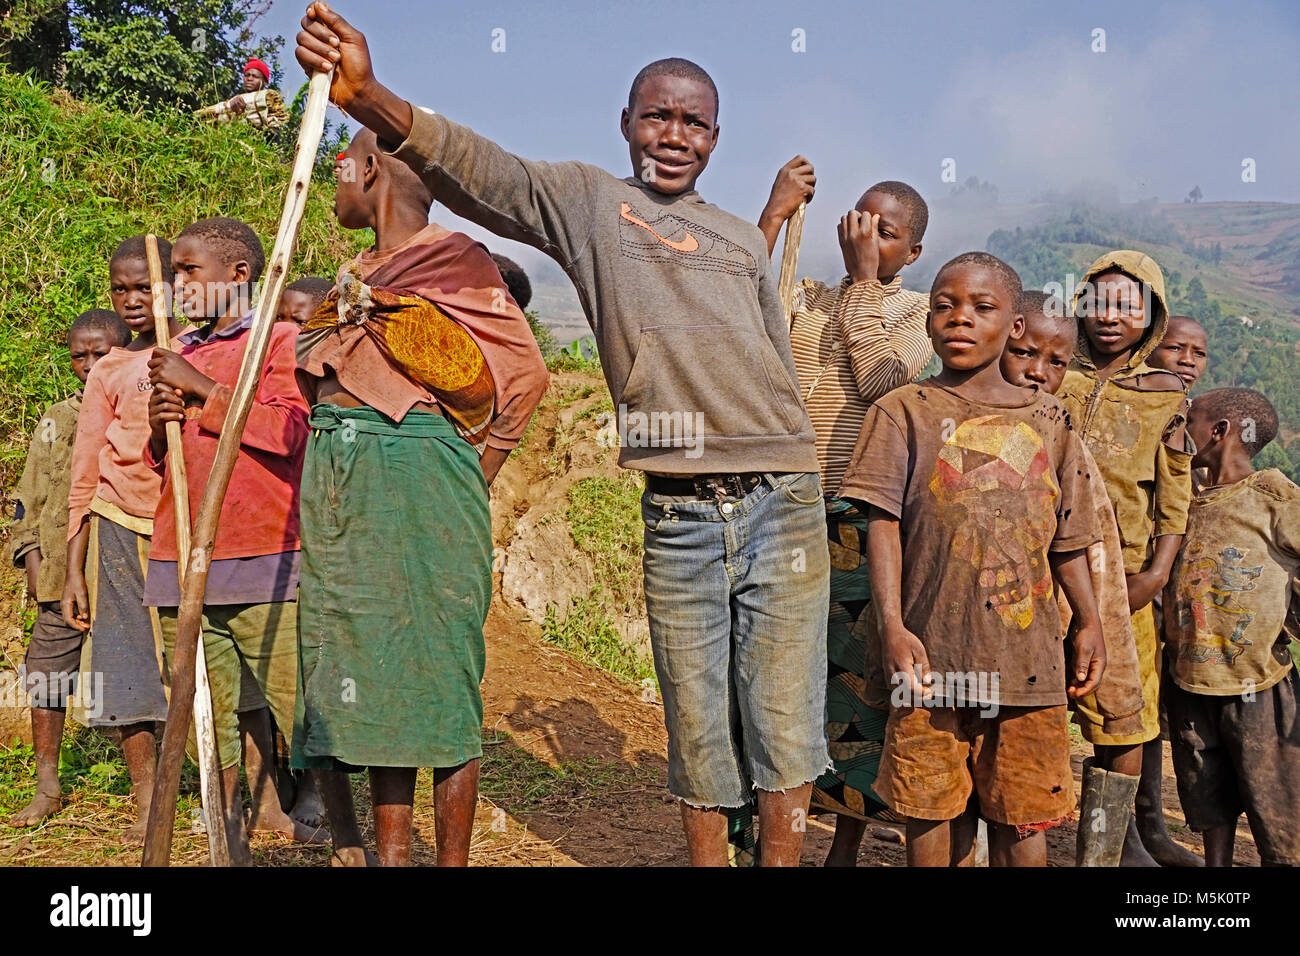 Children from an impoverished village of Batwa Pygmies displaced from their forest habitat and resettled at Lake - Stock Image